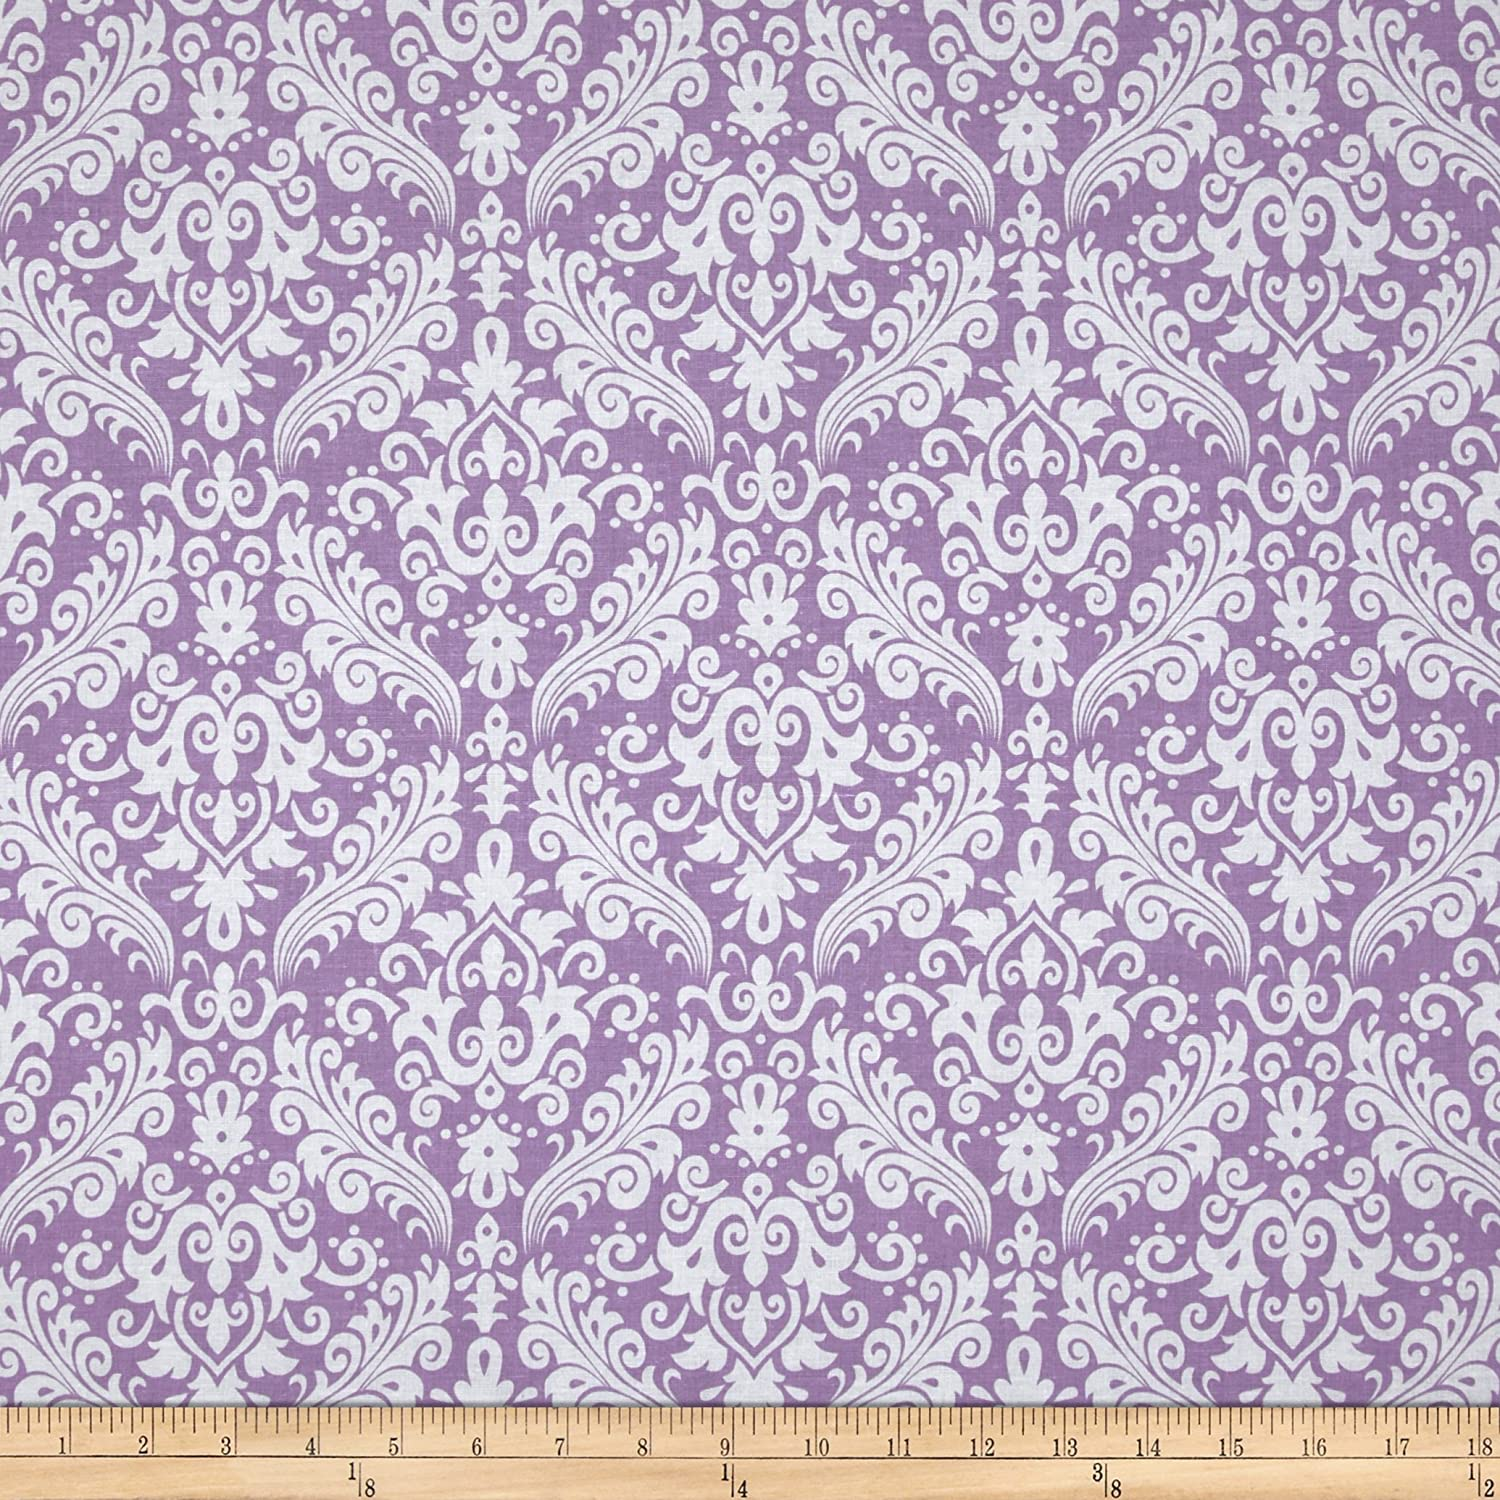 Riley Blake Medium Damask Lavender Fabric lucinda riley tormiõde